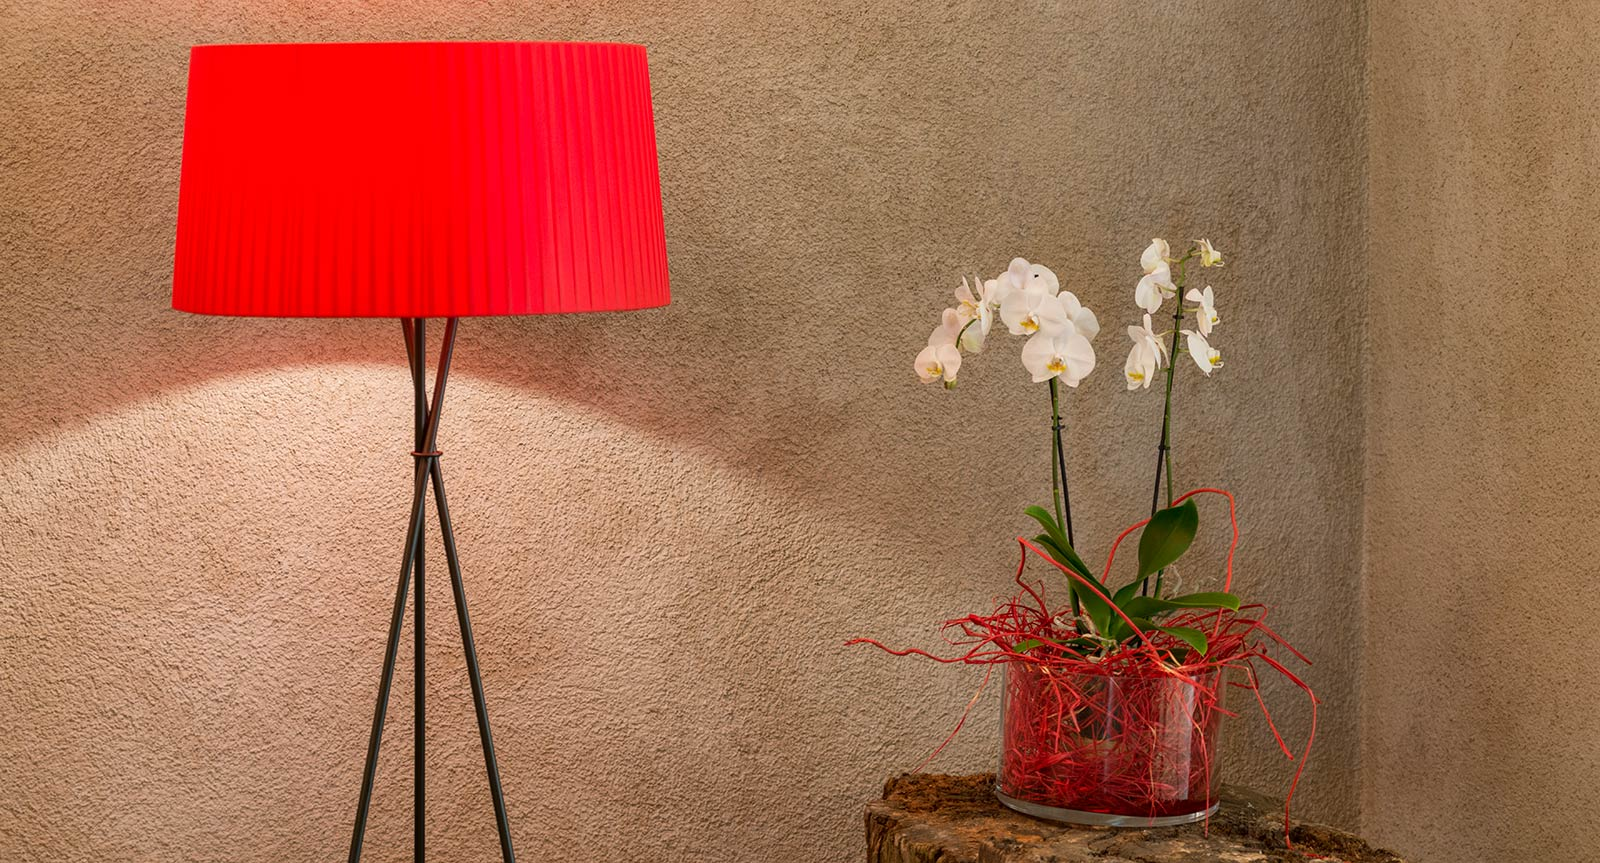 a red lamp and a vase with white flowers in it on a night box